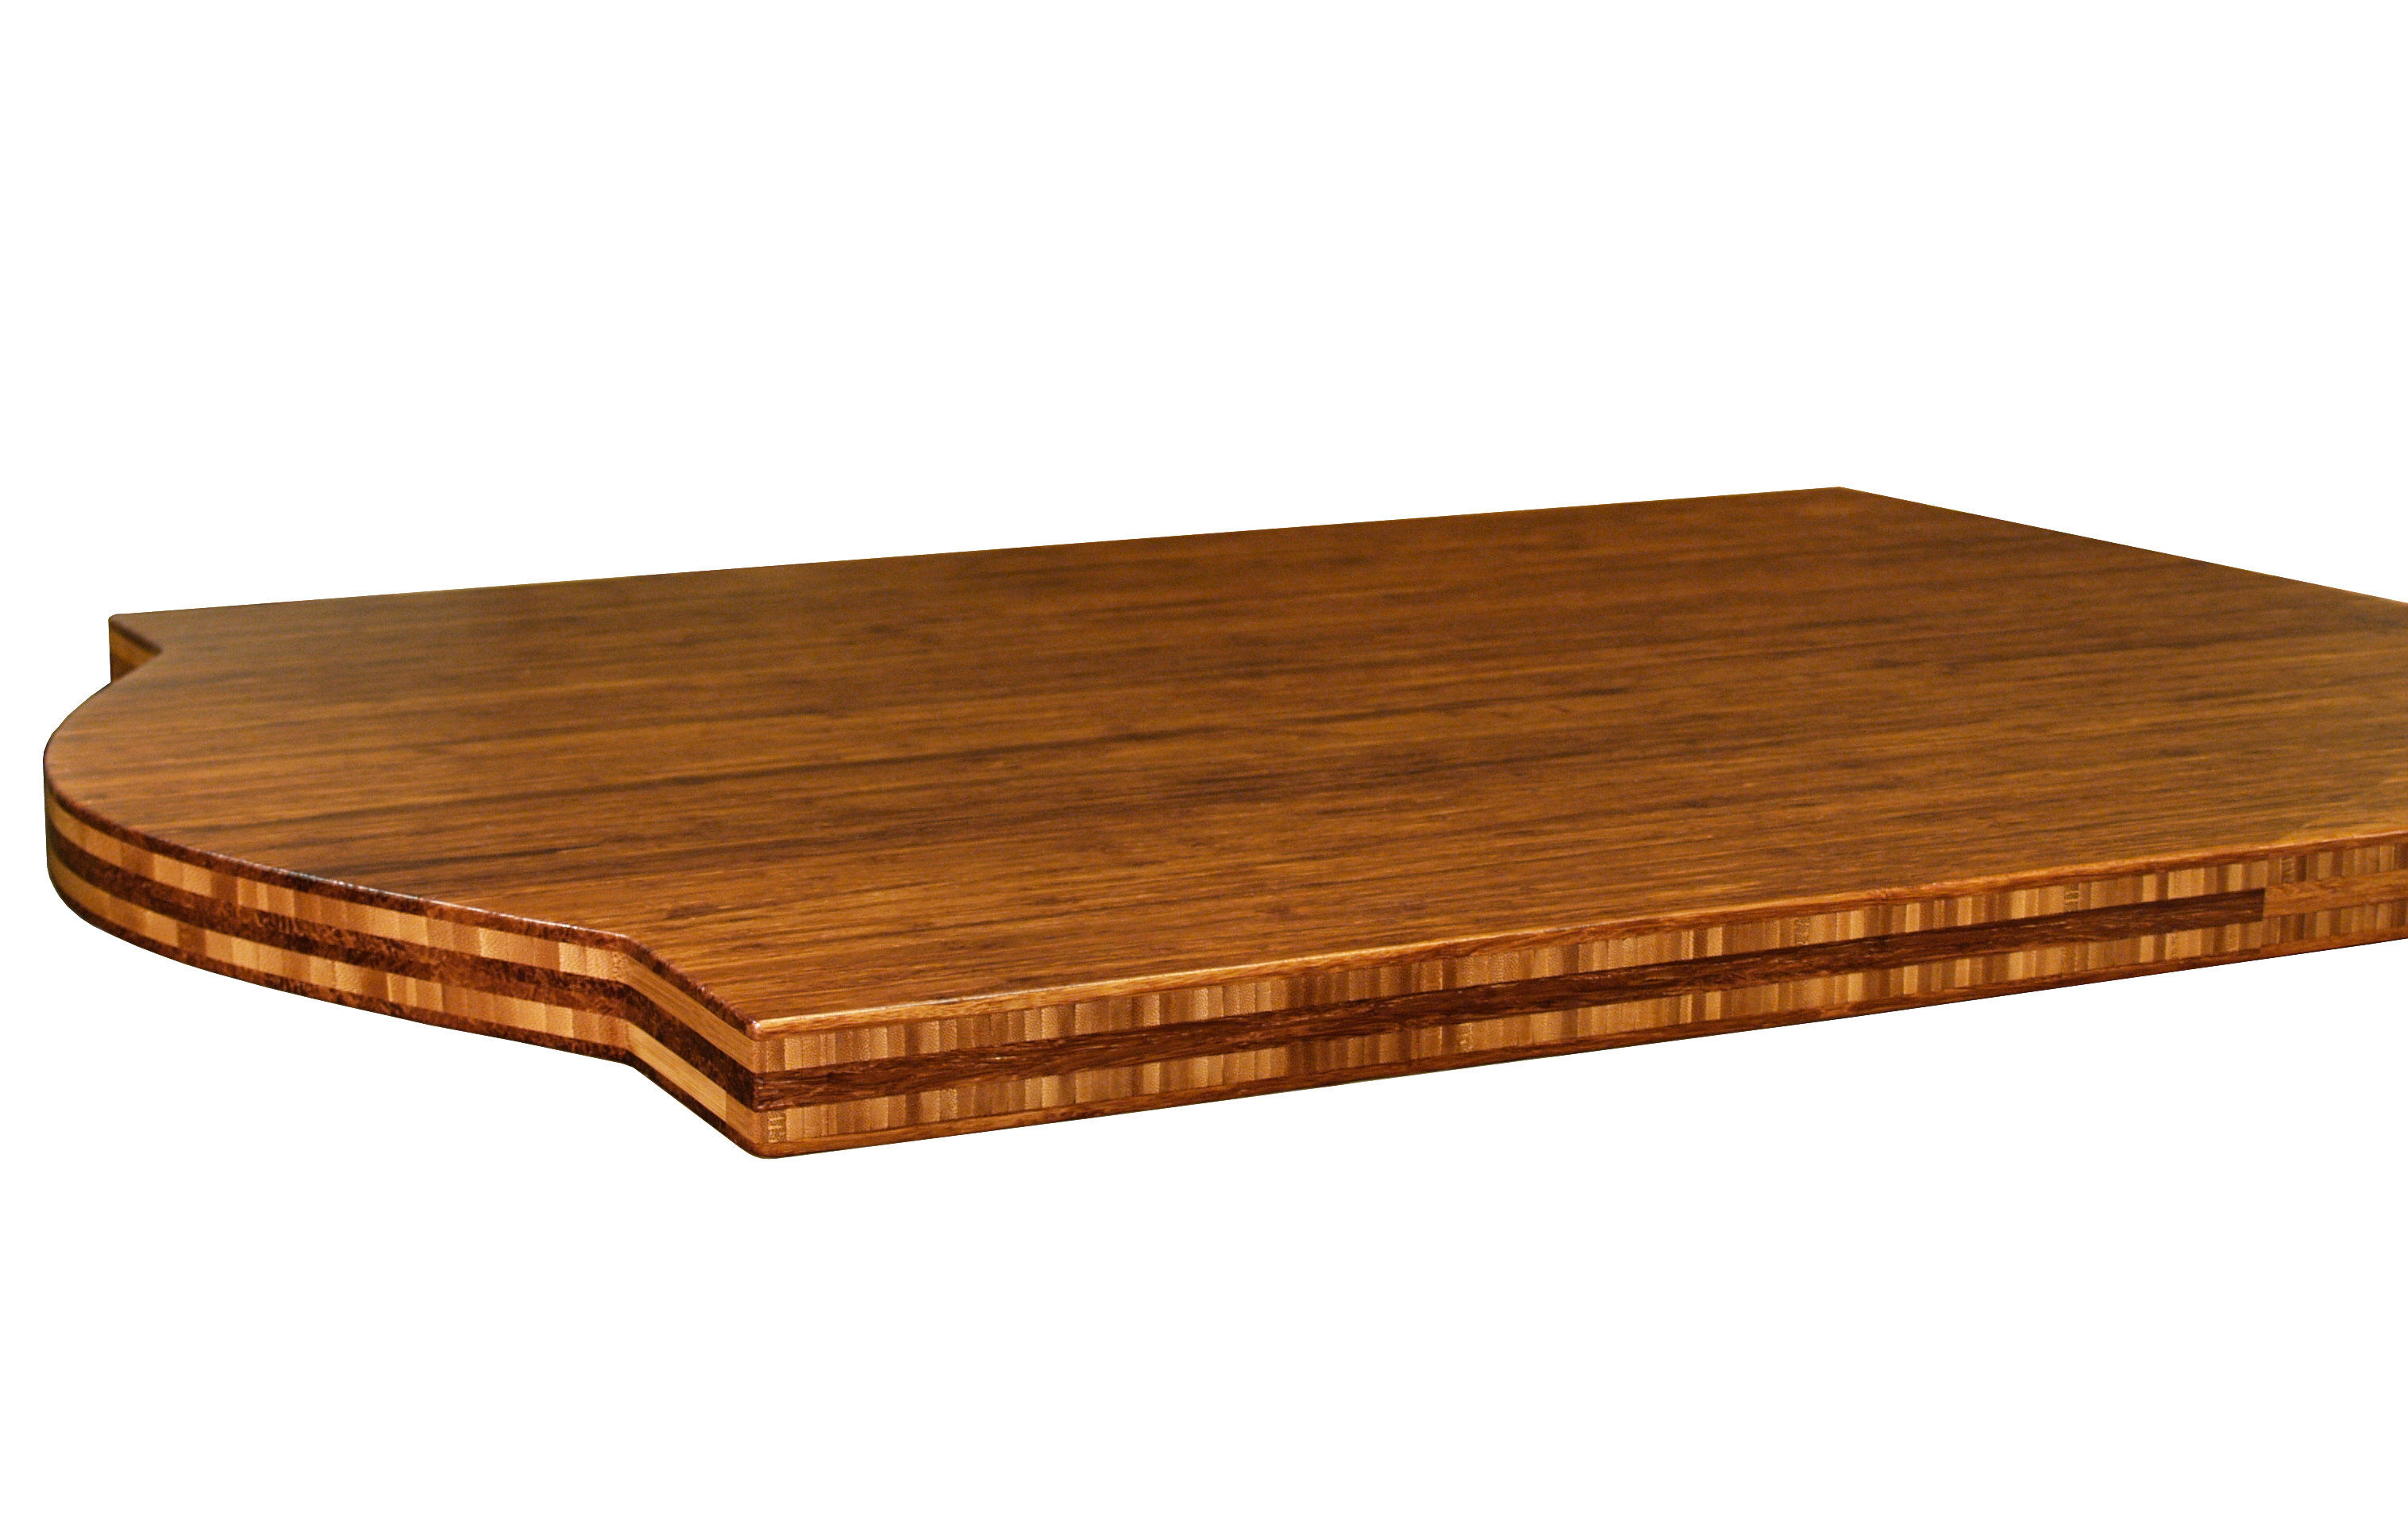 Bamboo Wood Countertop Photo Gallery, by DeVos Custom Woodworking